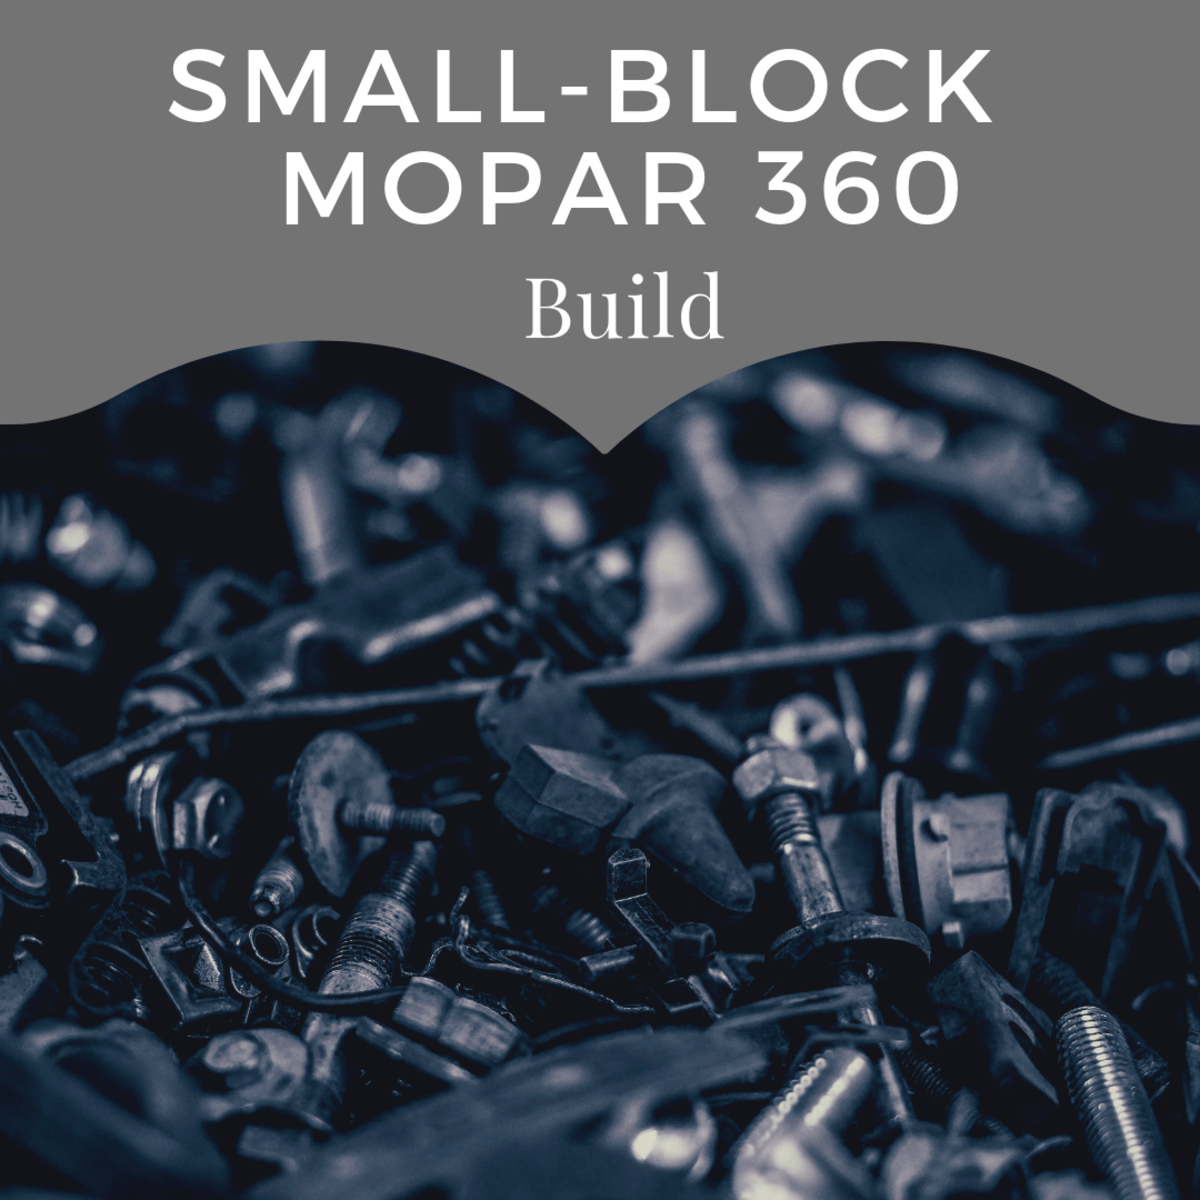 Small-block Mopar 360 build.